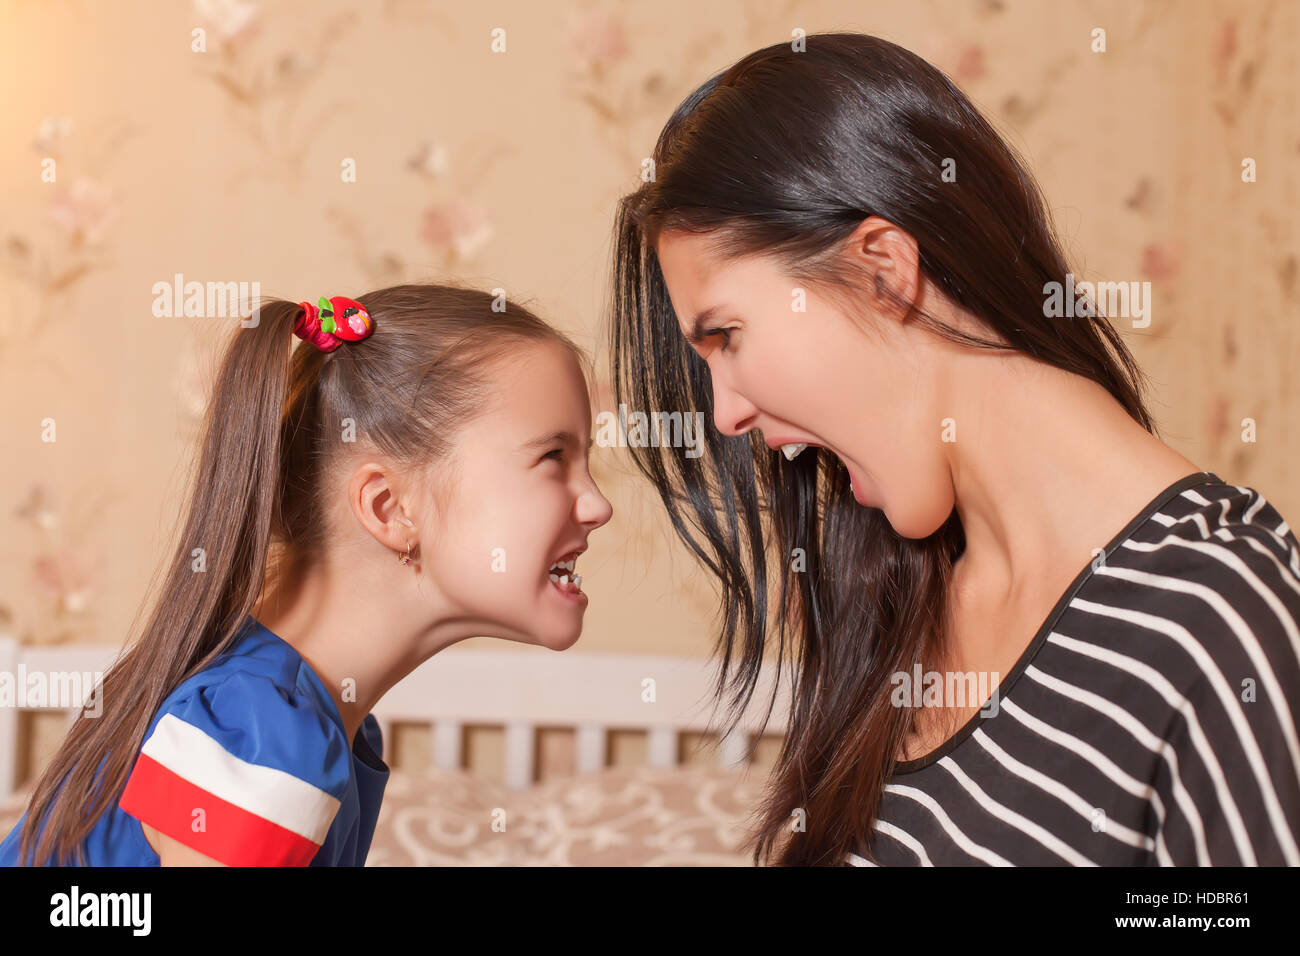 Mother and daughter make each other terrible faces Stock Photo